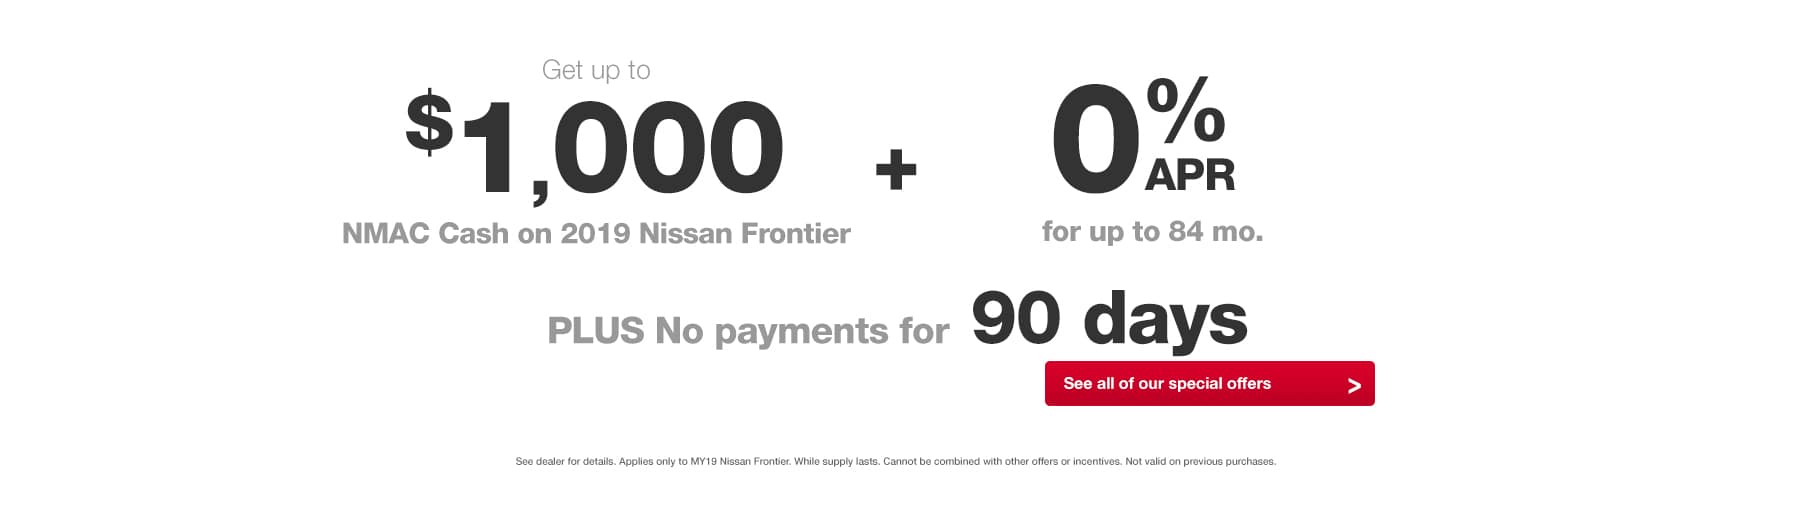 2019 Nissan Frontier Best Deal Best Offer of the year 0% APR for up to 84 months and 90 days no payments 2019 Nissan Frontier Sale Best deal near Santa Clarita, Ca at Hello Nissan of Valencia near Santa Clarita, Ca Simi Valley, Ca, San Fernando Valley, Ca Ventura, Ca Glendale, Ca Palmdale, Ca and Los Angeles Metro Area